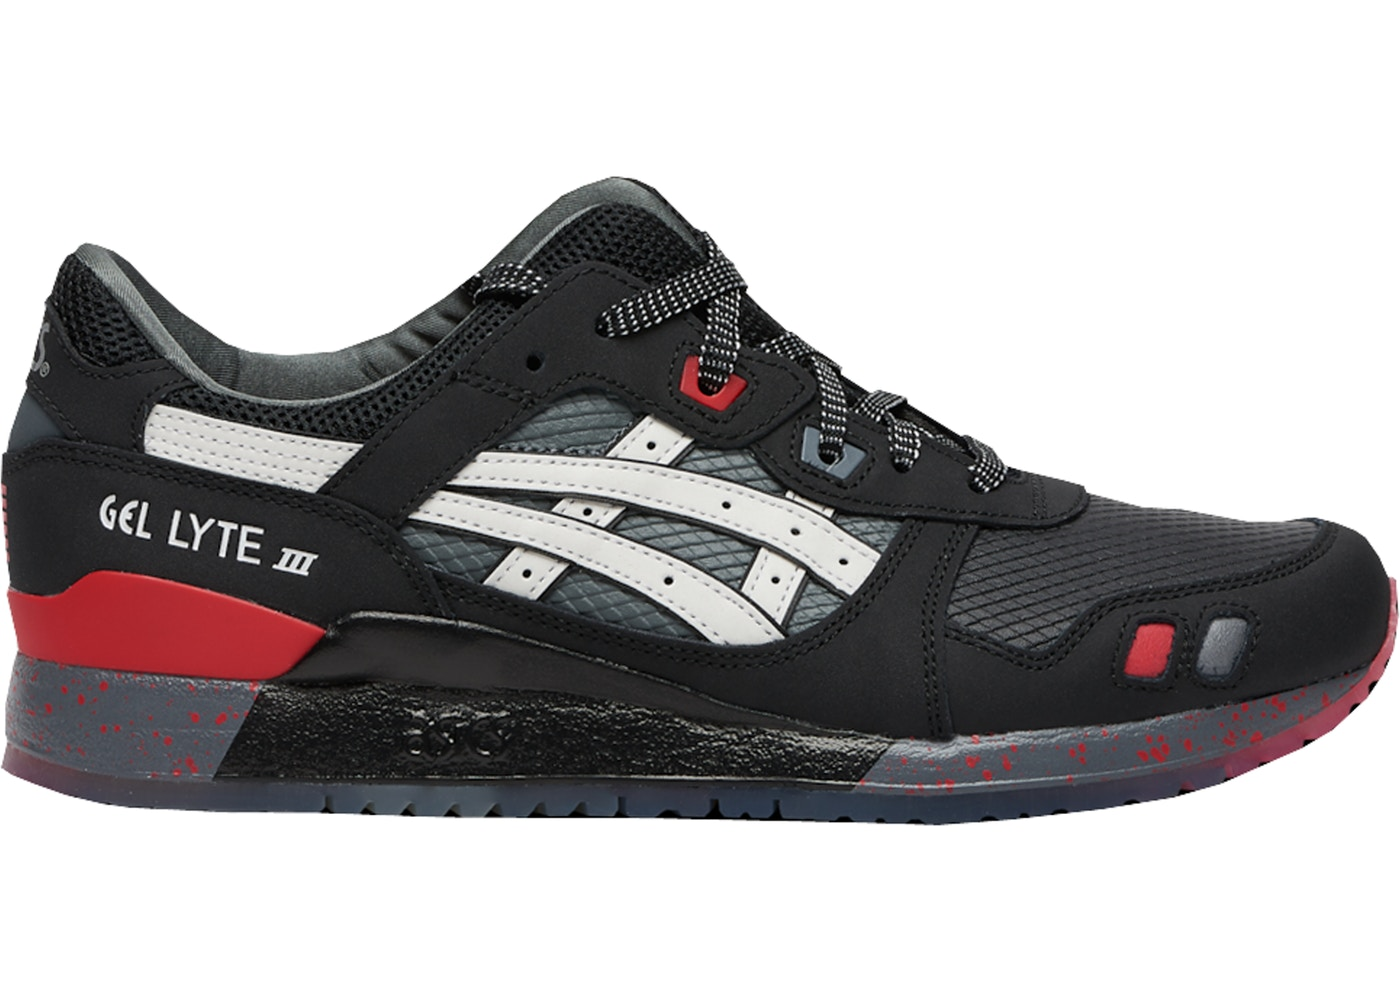 01f965324960 Asics Shoes - Release Date